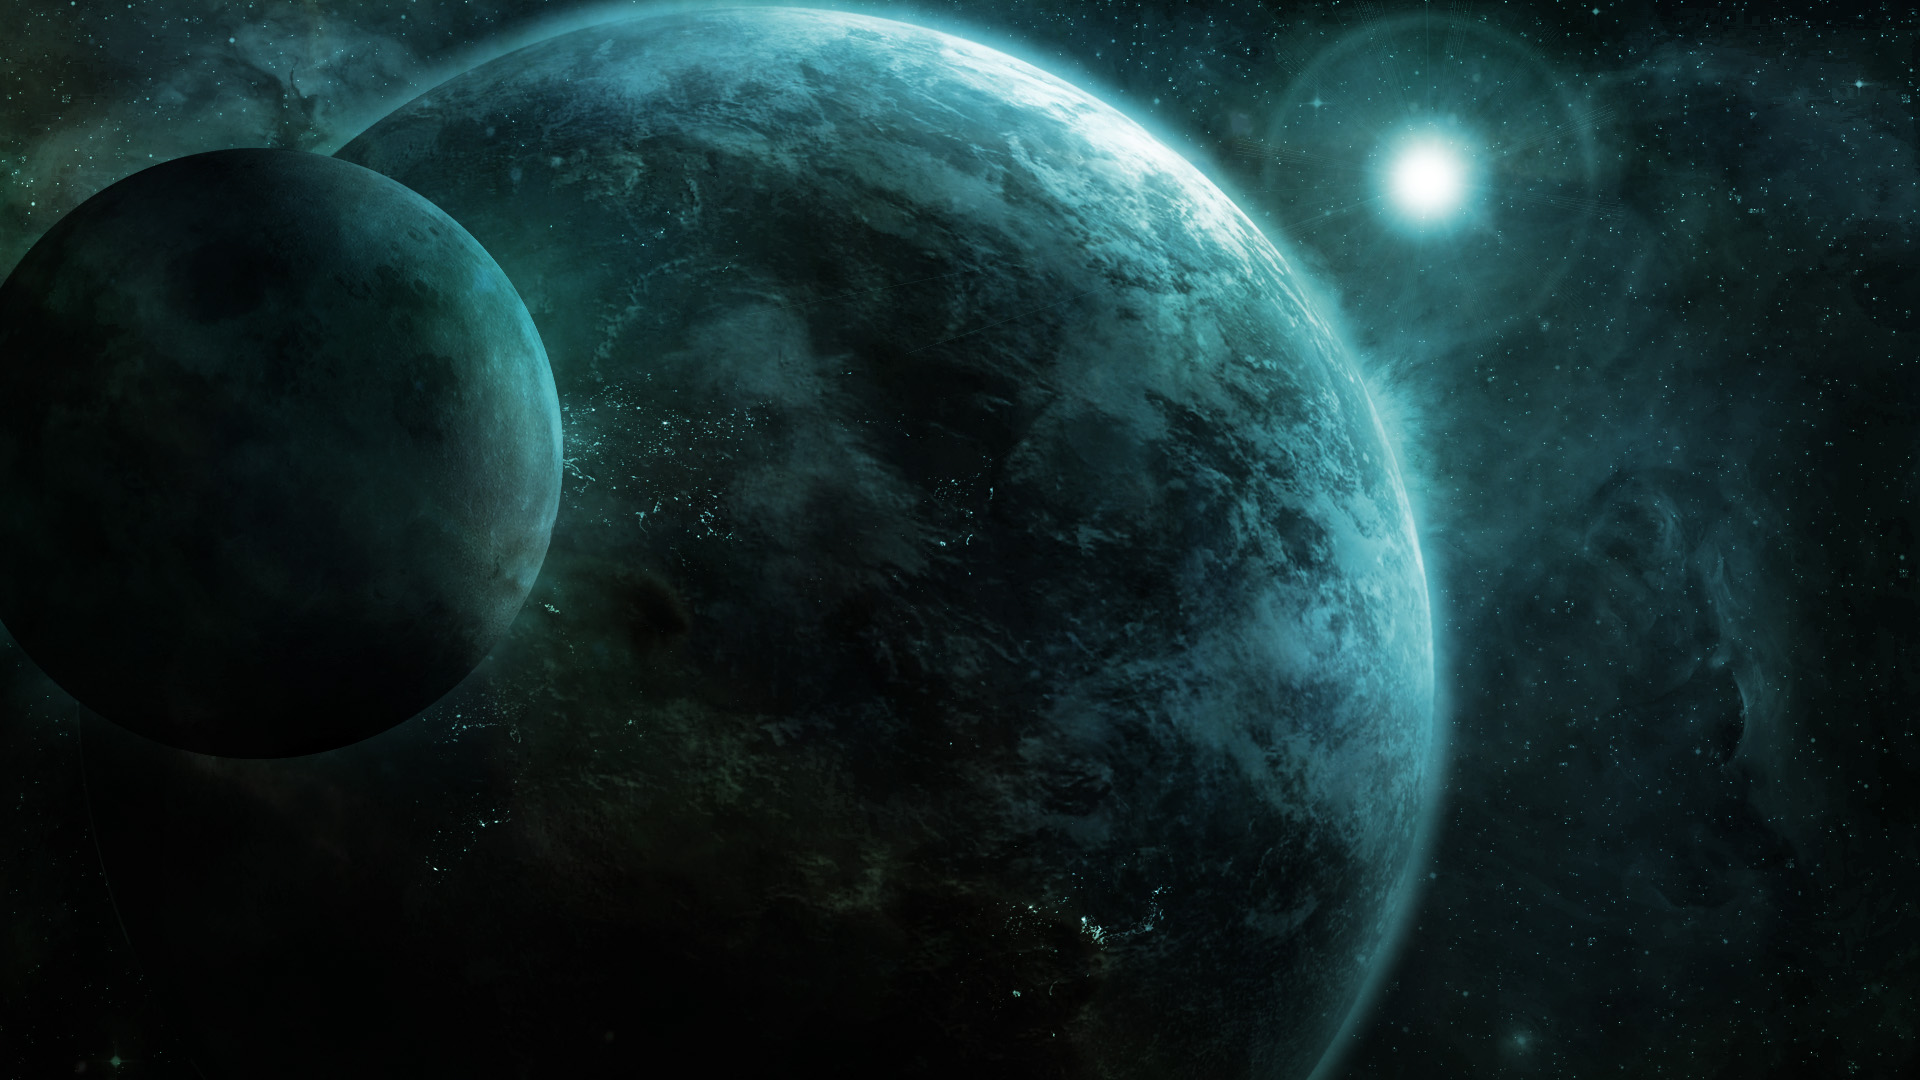 Earth from space wallpaper 1920x1080 wallpapersafari - Space backgrounds 1920x1080 ...